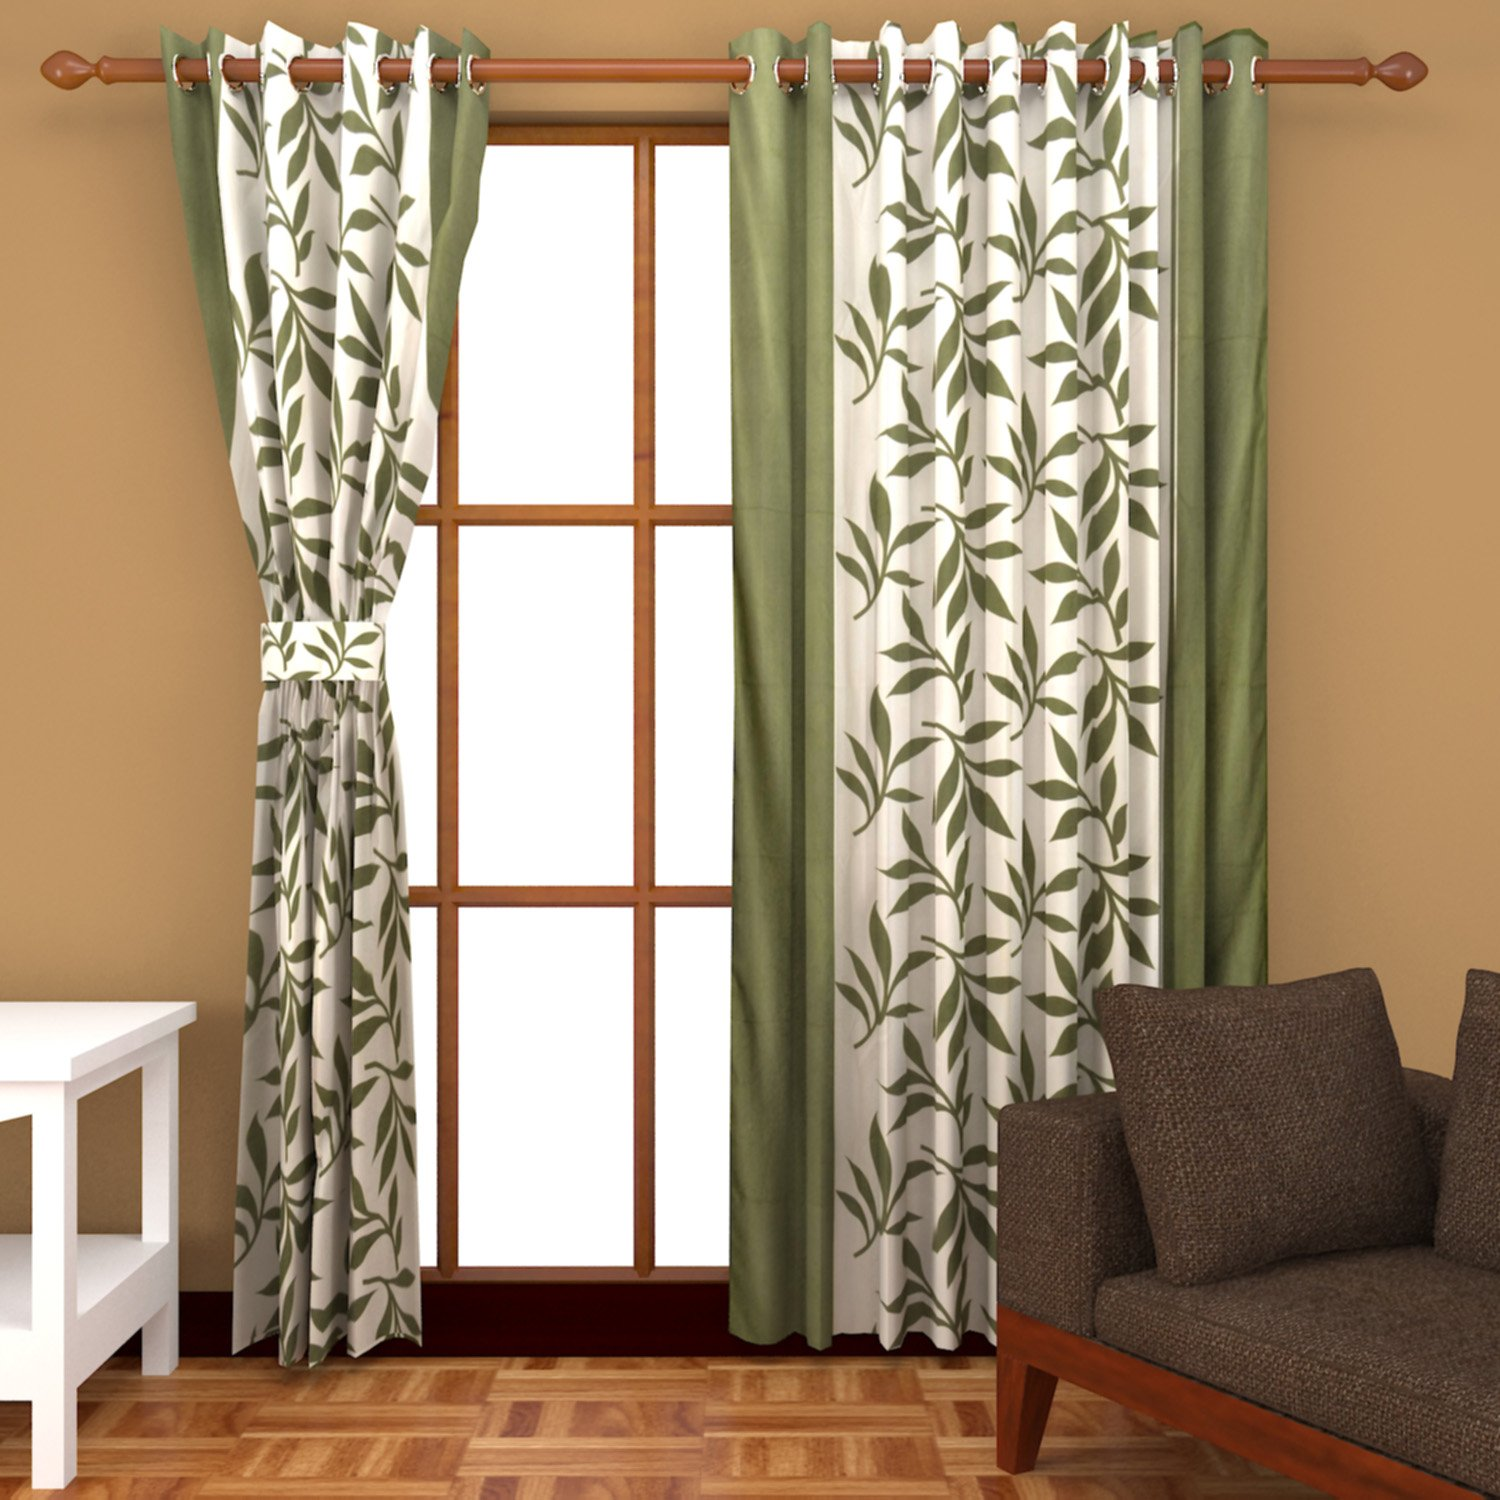 Online door curtains india curtain menzilperde net for 3 window curtain design